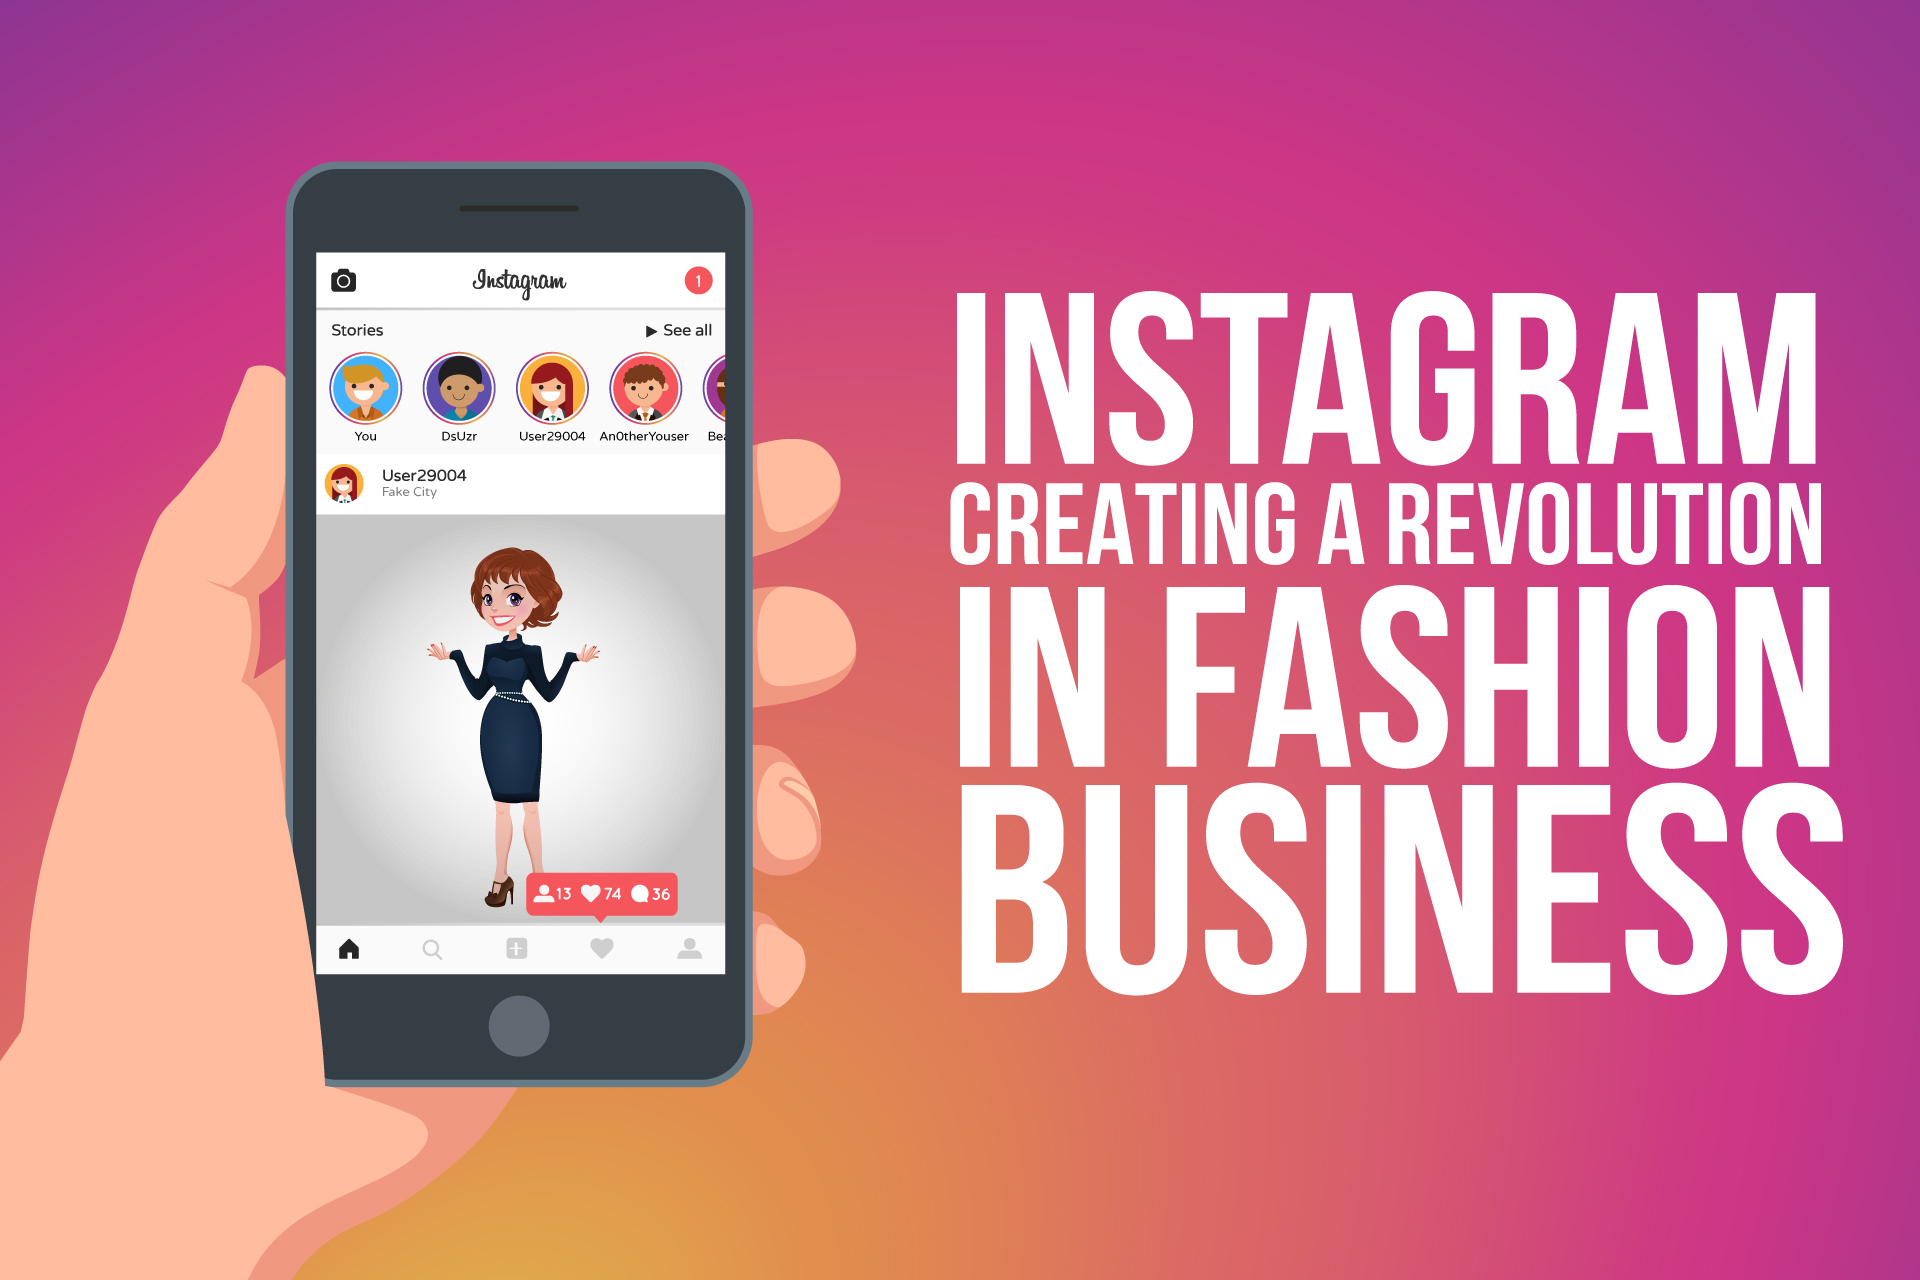 Instagram – Creating a Revolution in Fashion Business